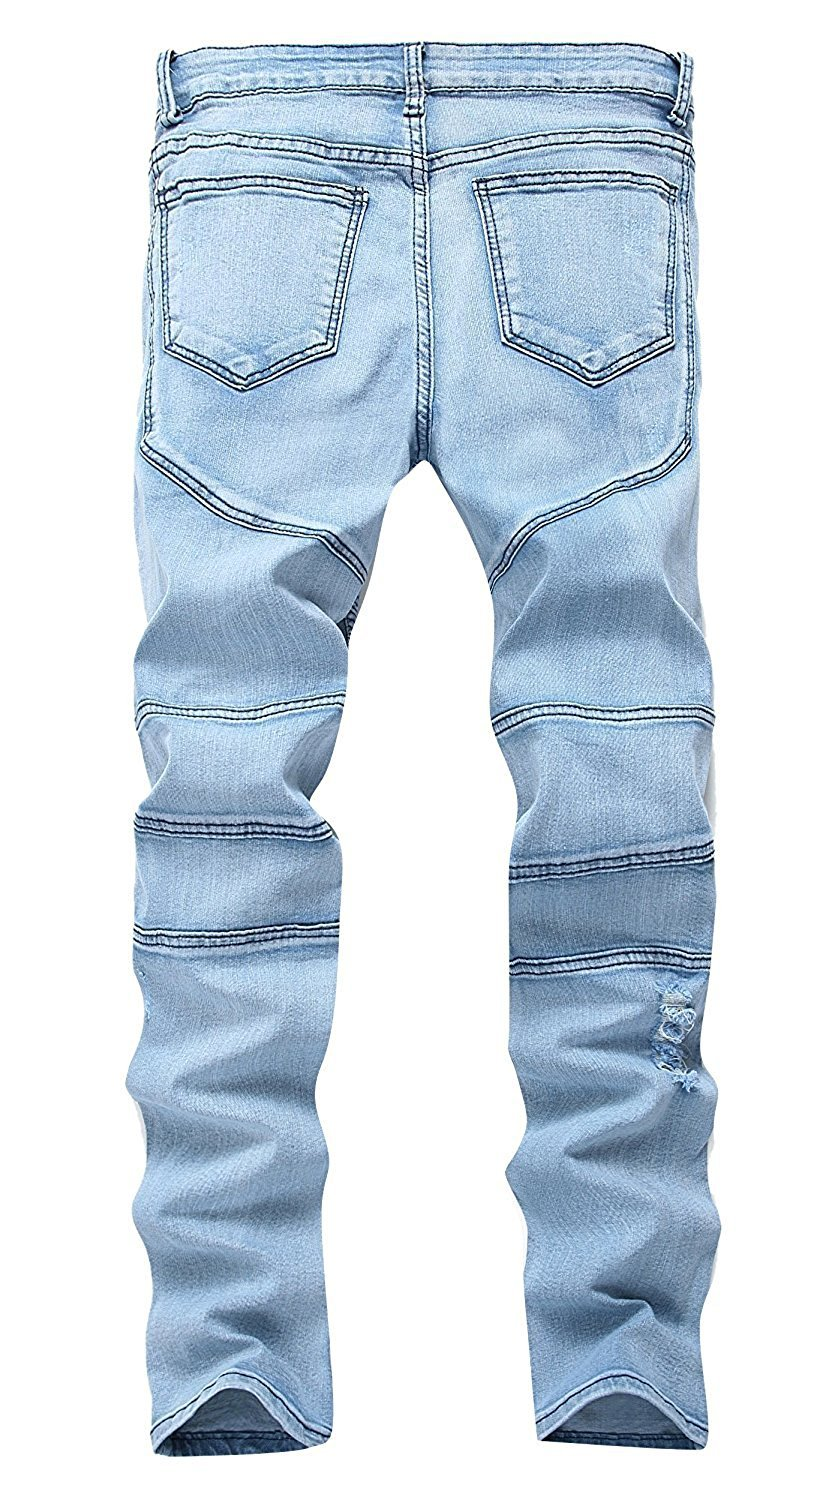 TOPING Fine Handsome Men's Blue Skinny Ripped Destroyed Distressed Straight Slim Tapered Leg Jeans 606blueW32 by Toping Fine Pants (Image #1)